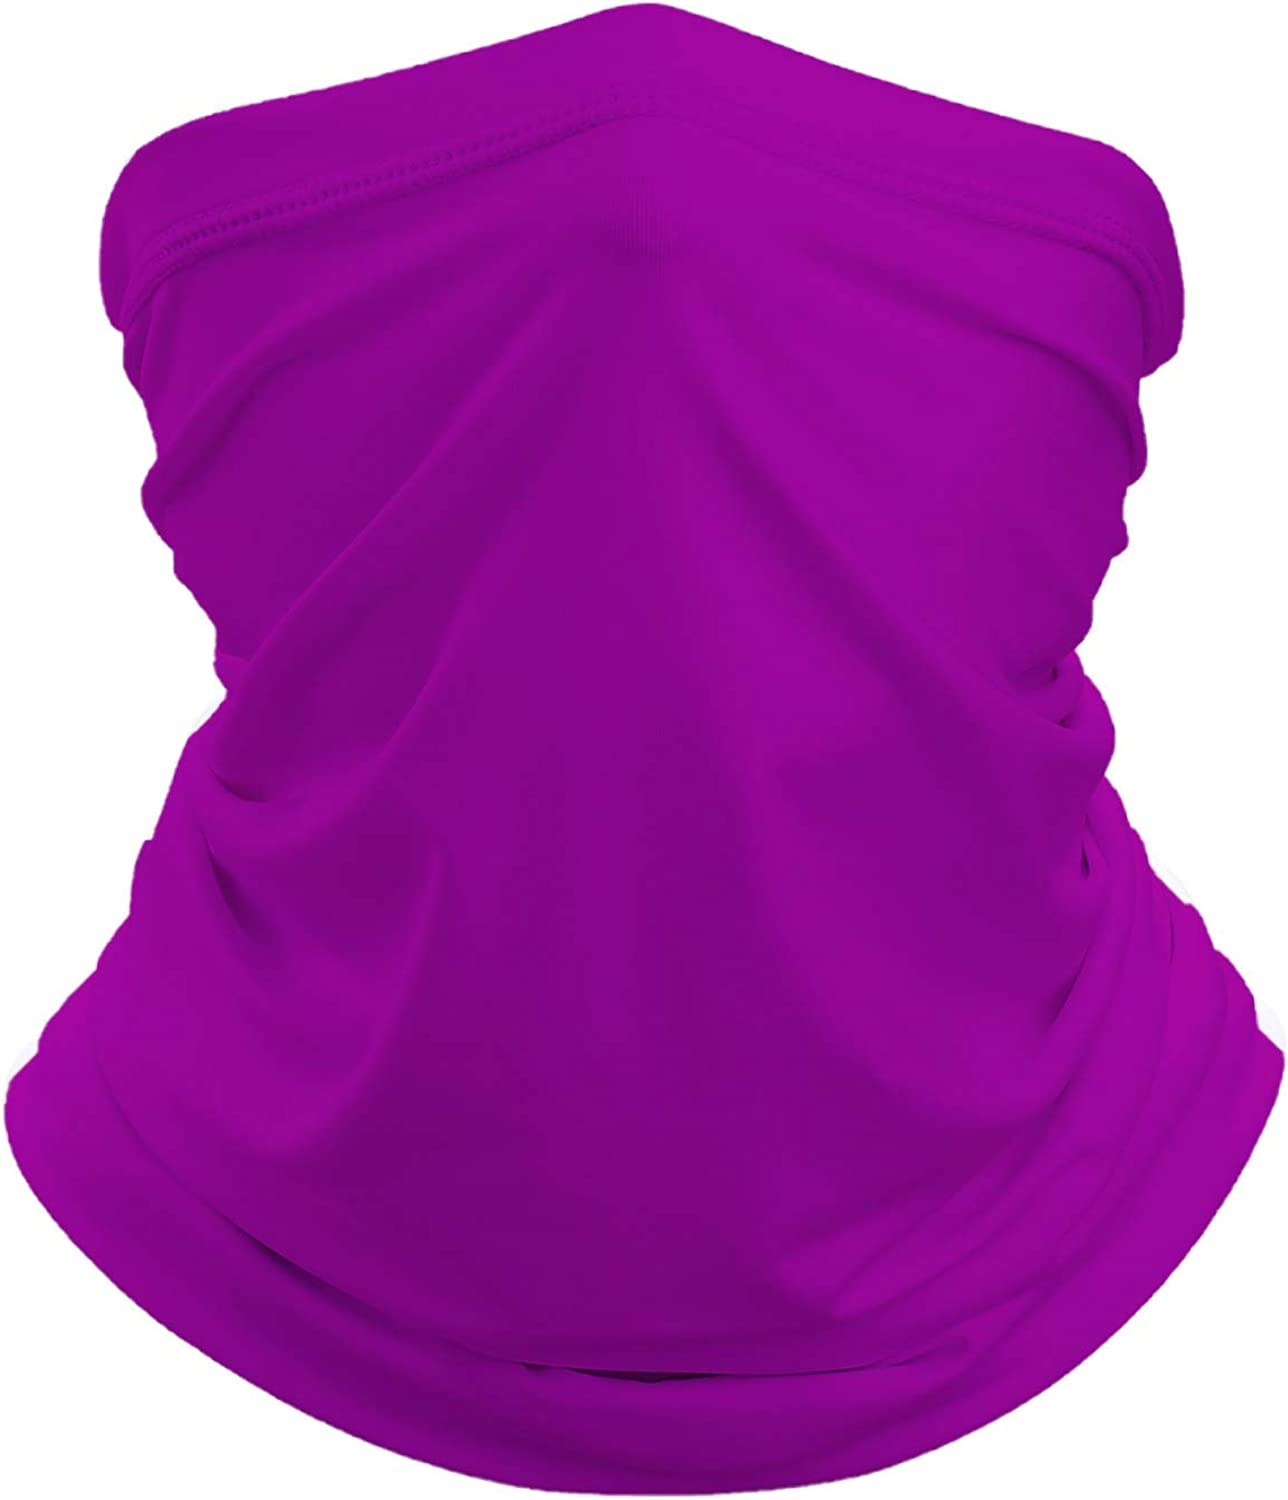 Ultra Durable Gaiterfy Cooling Neck Gaiters For Men/Cooling Neck Gaiters For Women! (Purple)